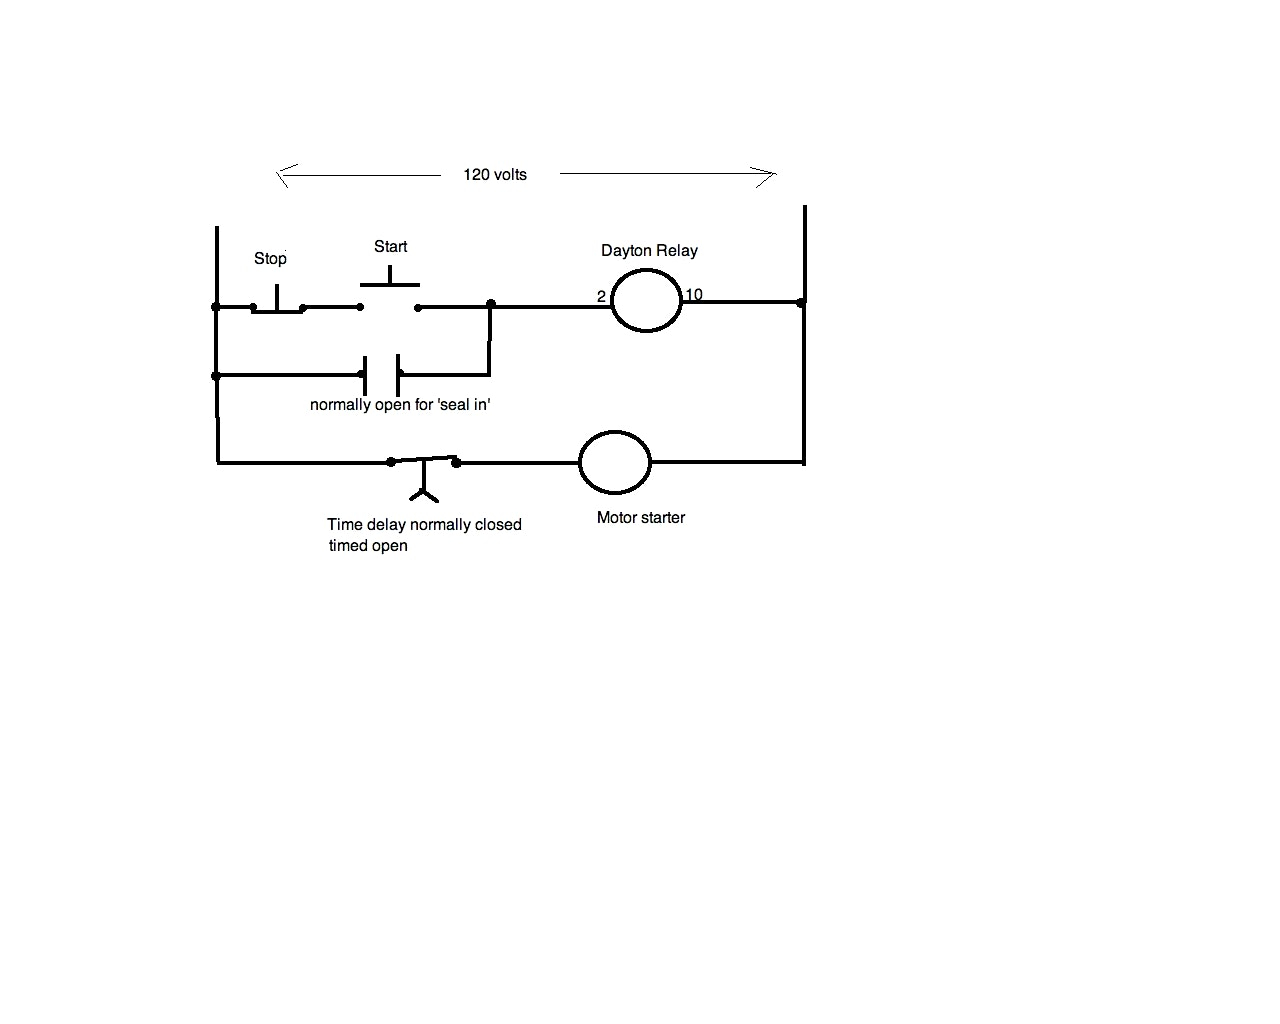 wiring diagram symbol solenoid mile marker winch dayton time delay relay download